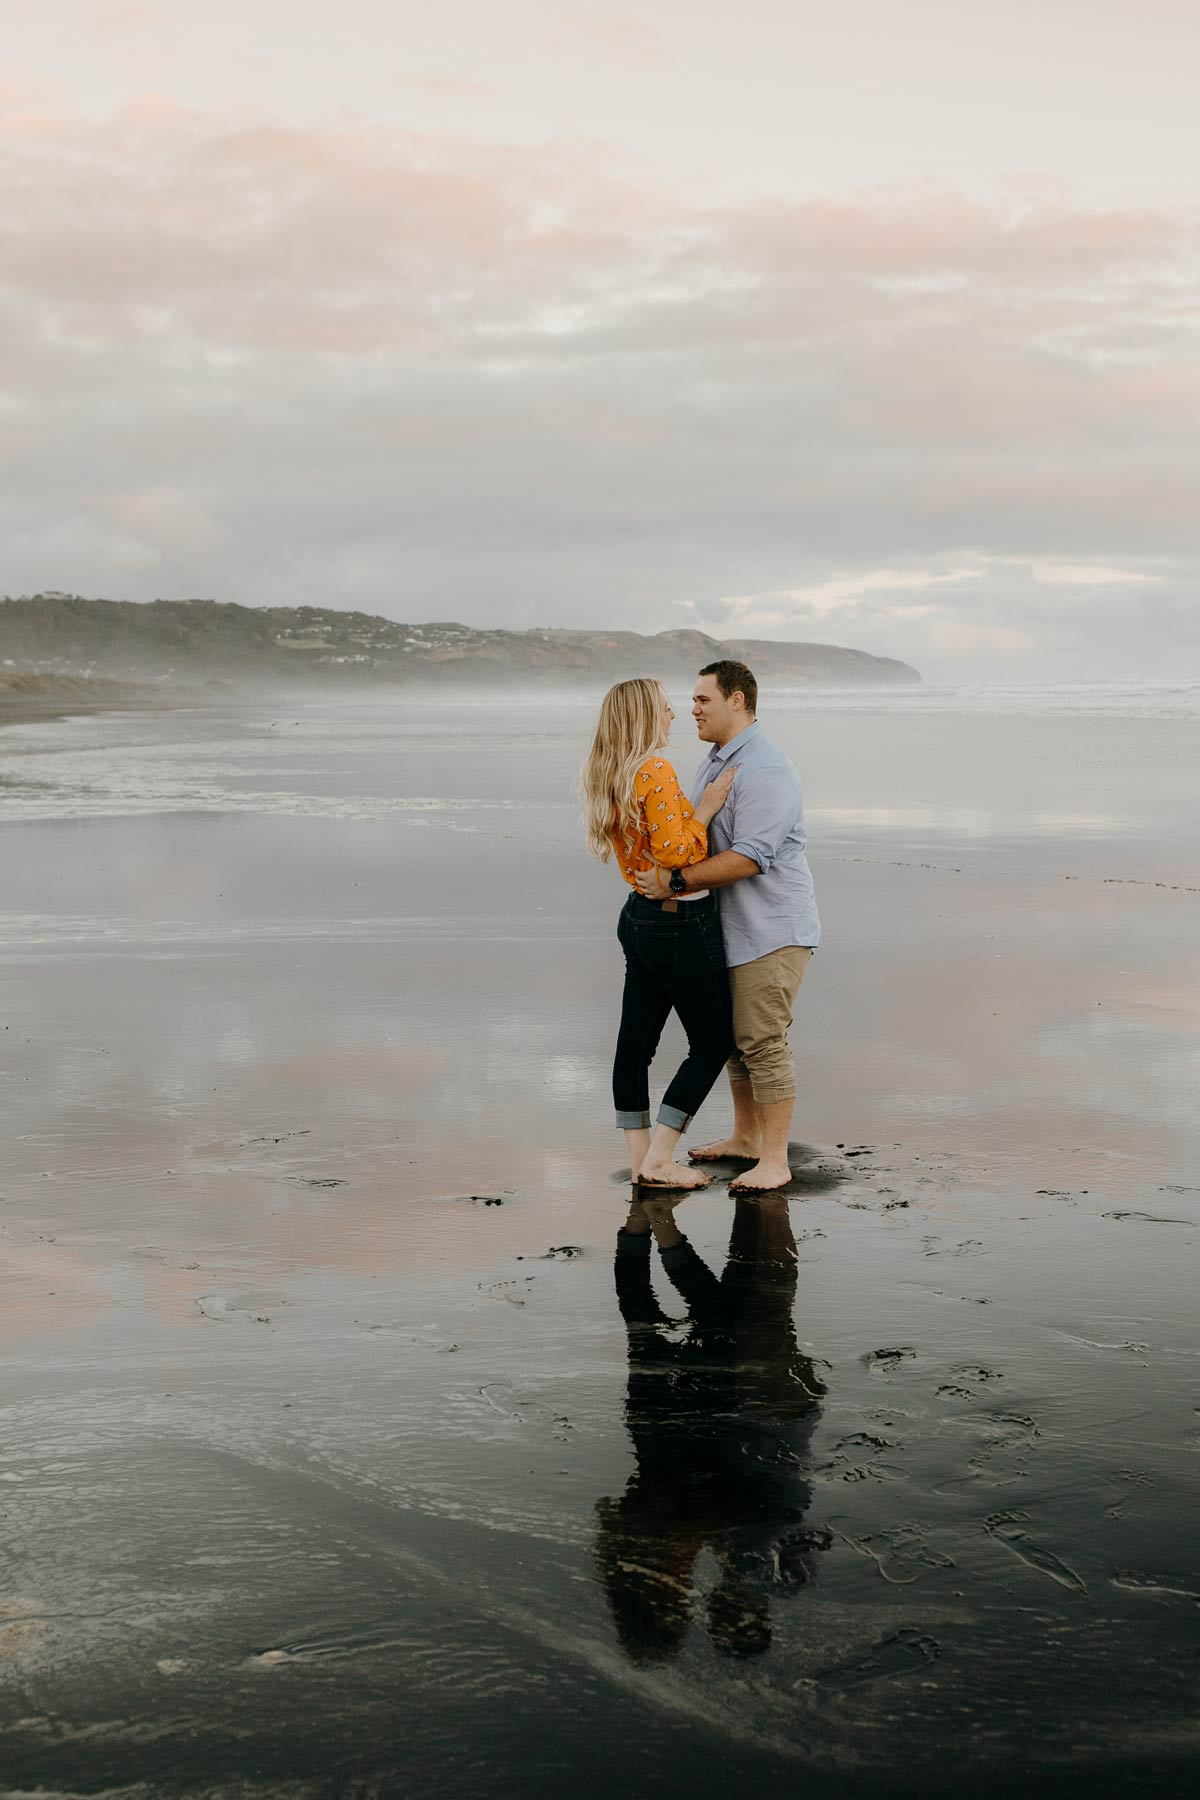 couple embracing with a wet sand reflection during a golden light evening lifestyle engagment pre-wedding photoshoot session at muriwai beach auckland new zealand photos by sarah weber photography